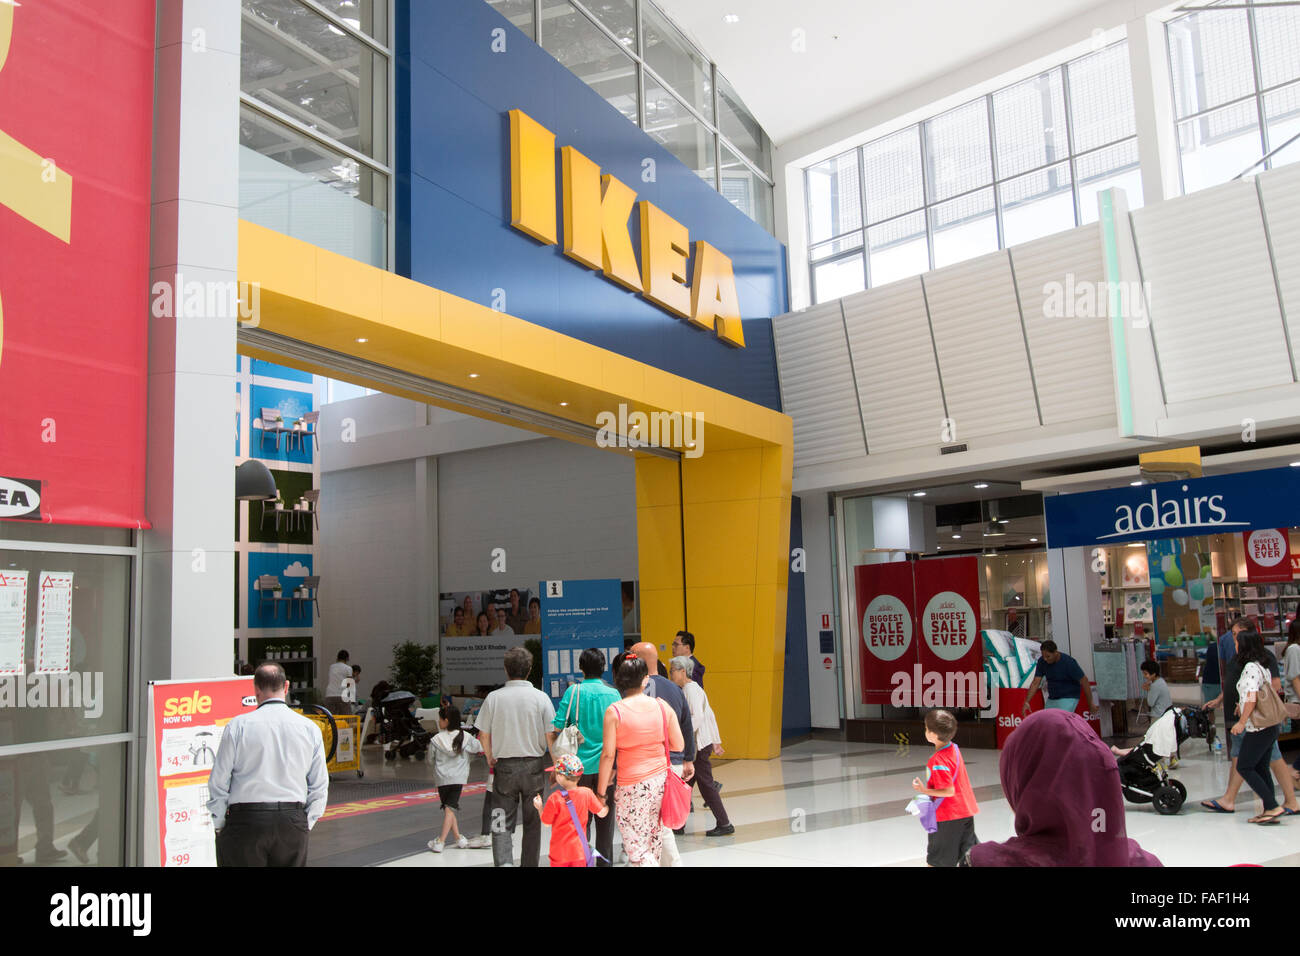 IKEA Furniture Store Entrance At Rhodes Shopping Centre In Sydney, New  South Wales,Australia